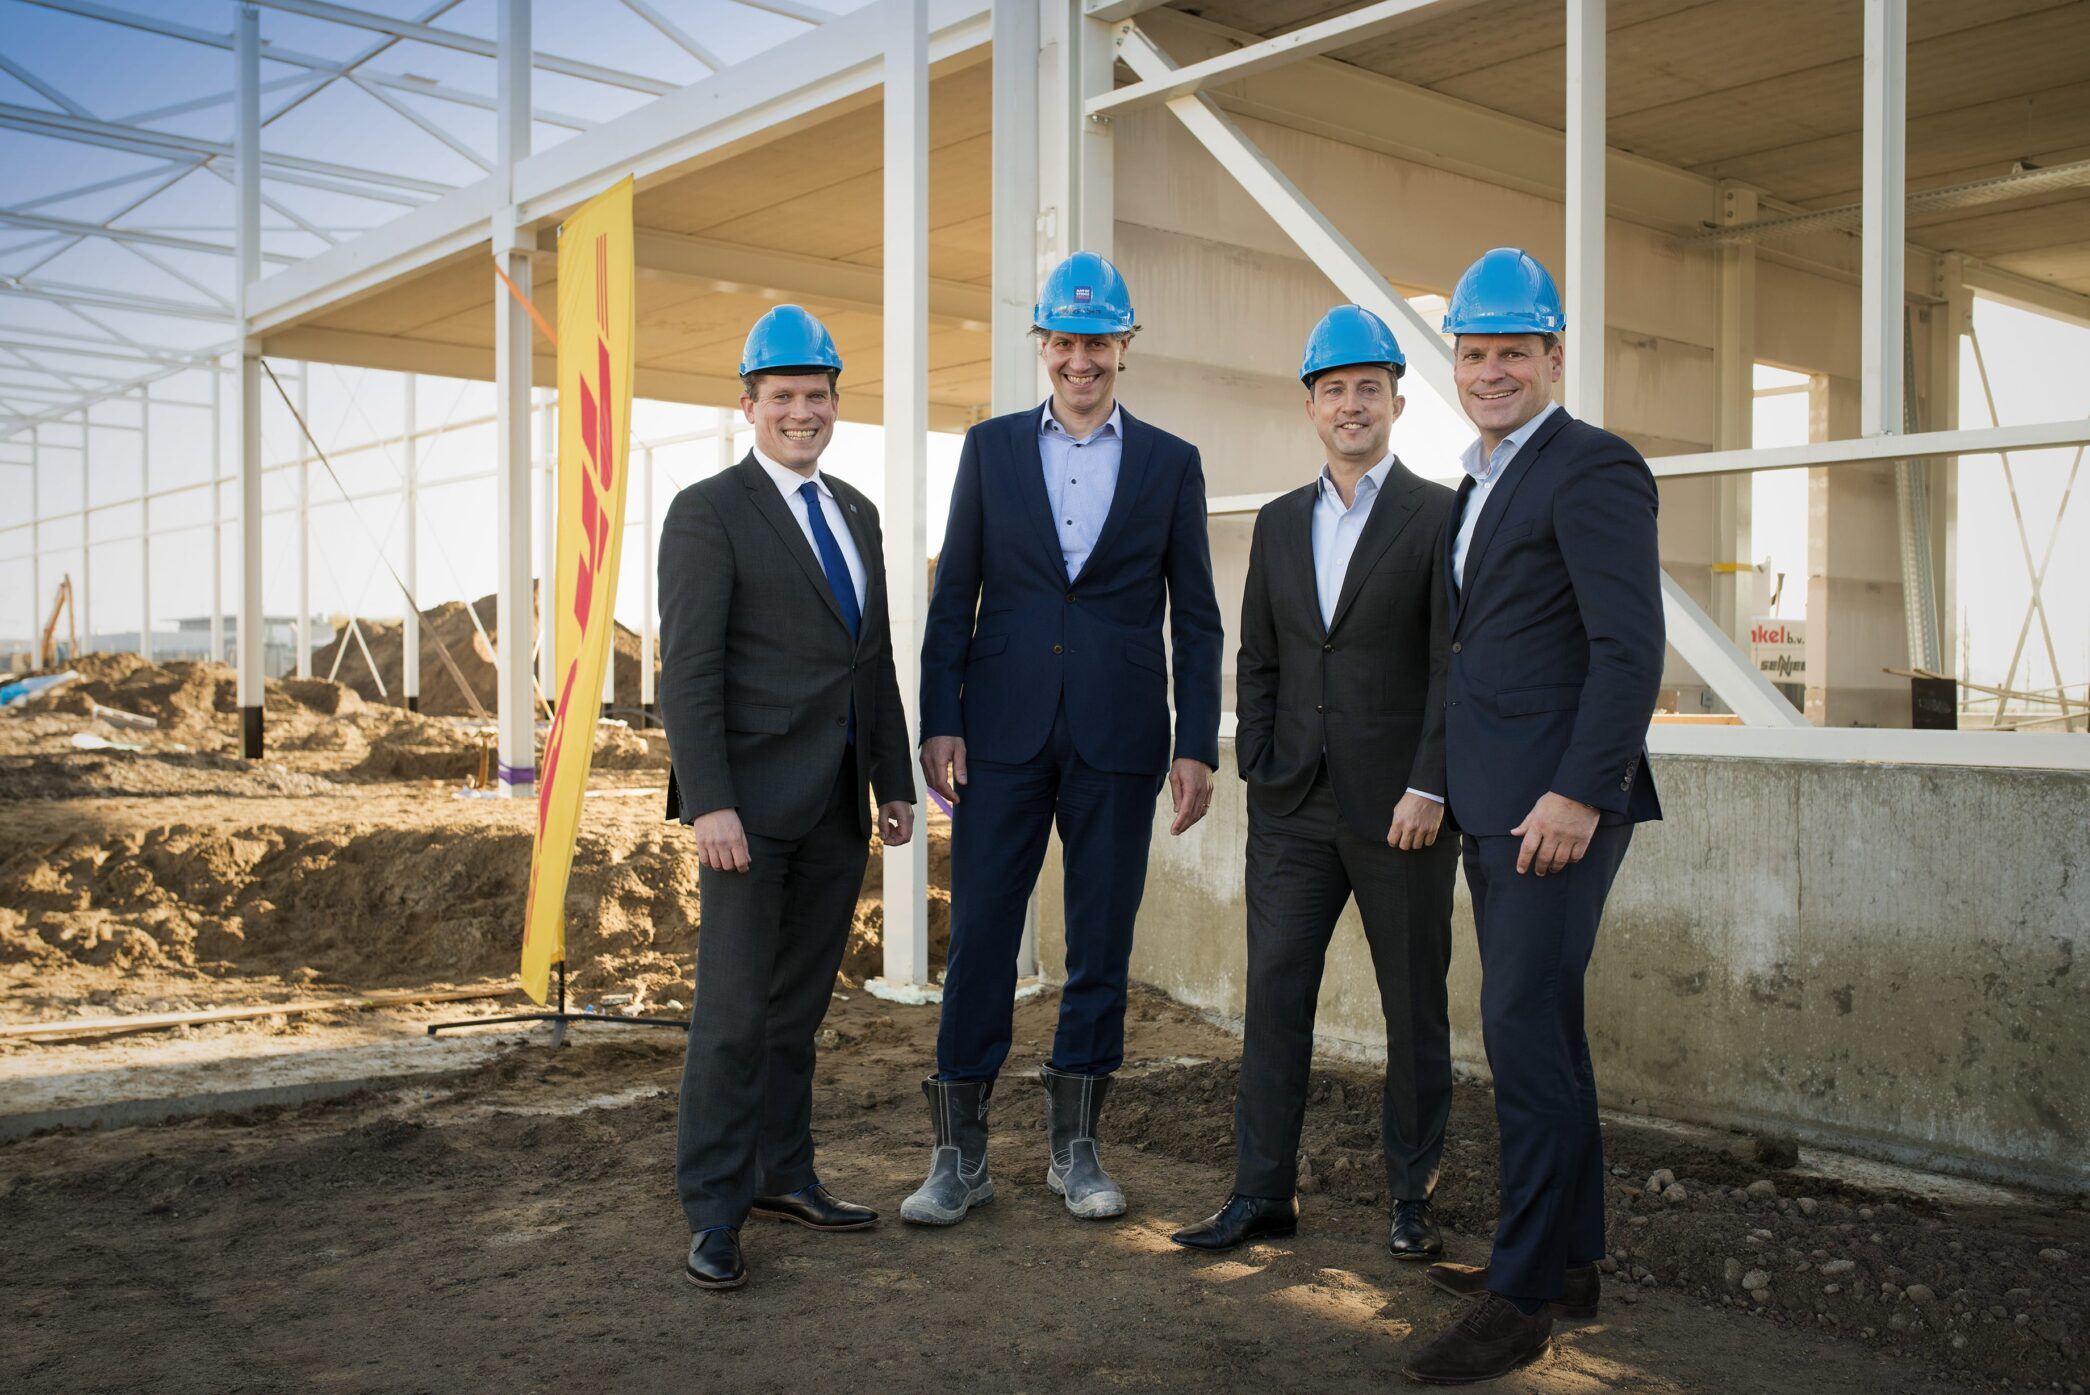 Ground breaking ceremony nieuw sorteercentrum DHL Express Zwolle